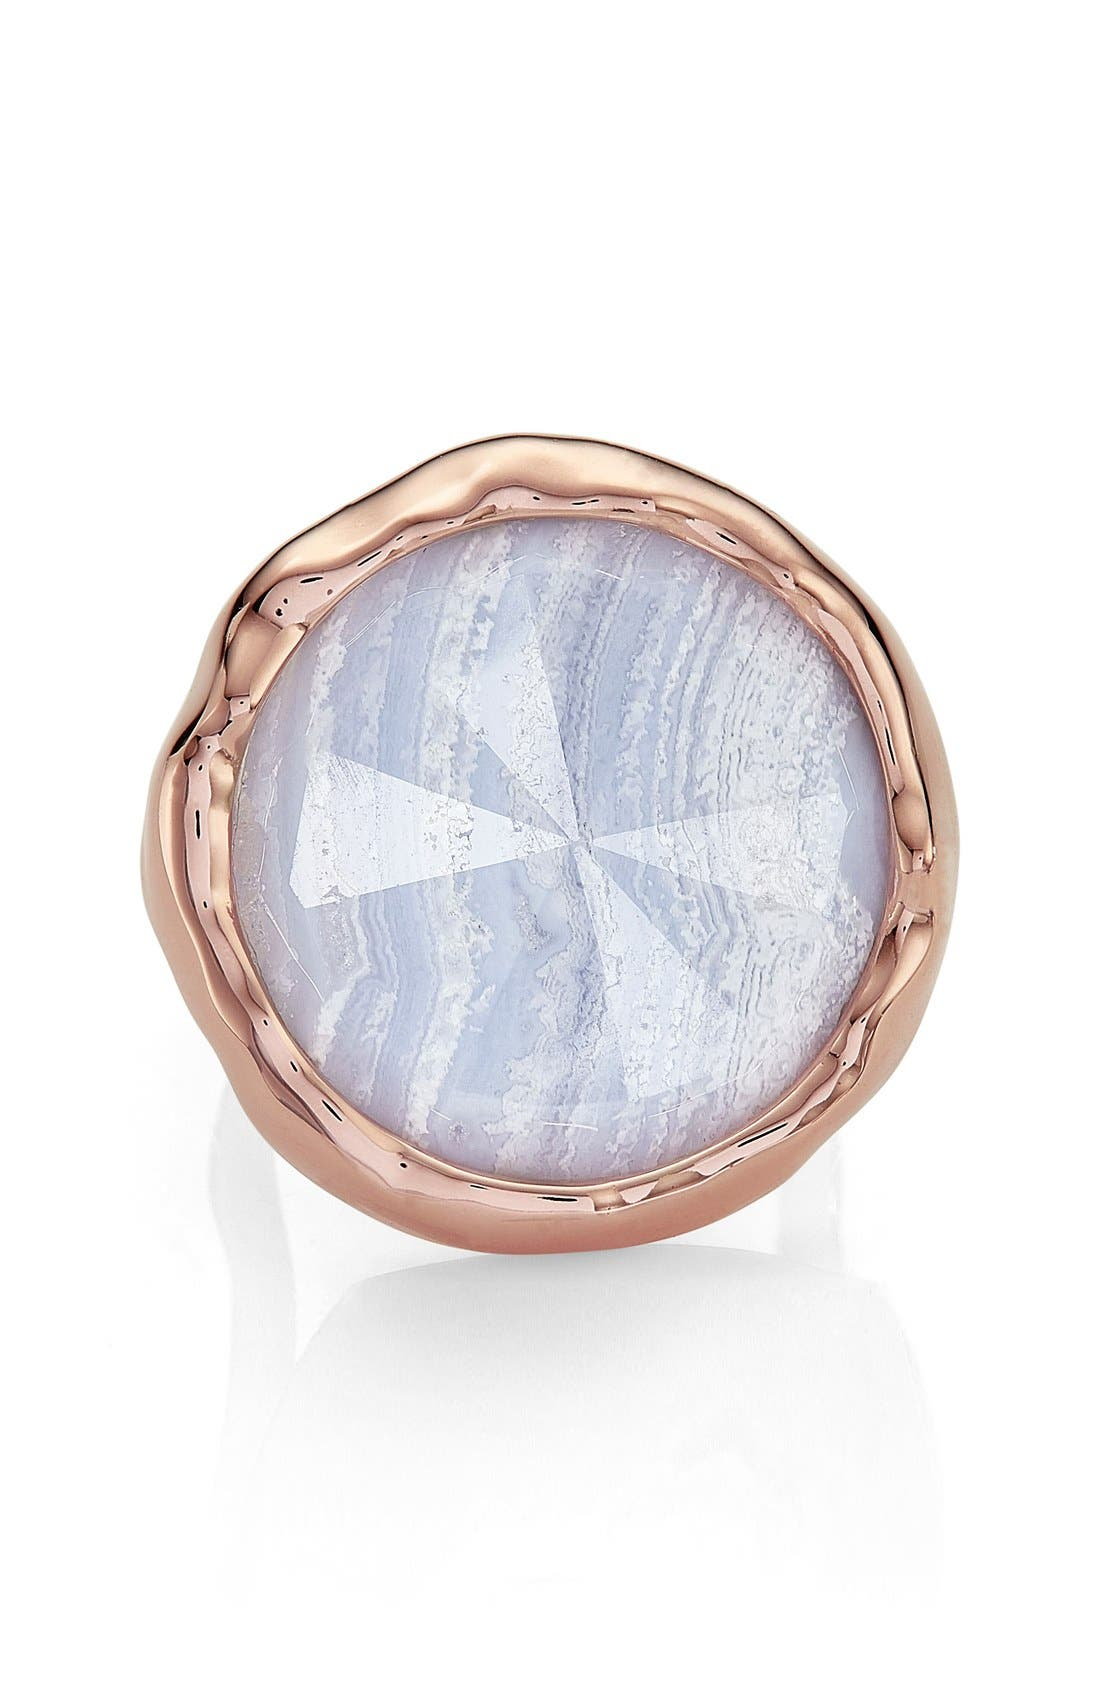 'Siren' Semiprecious Stone Ring,                             Alternate thumbnail 2, color,